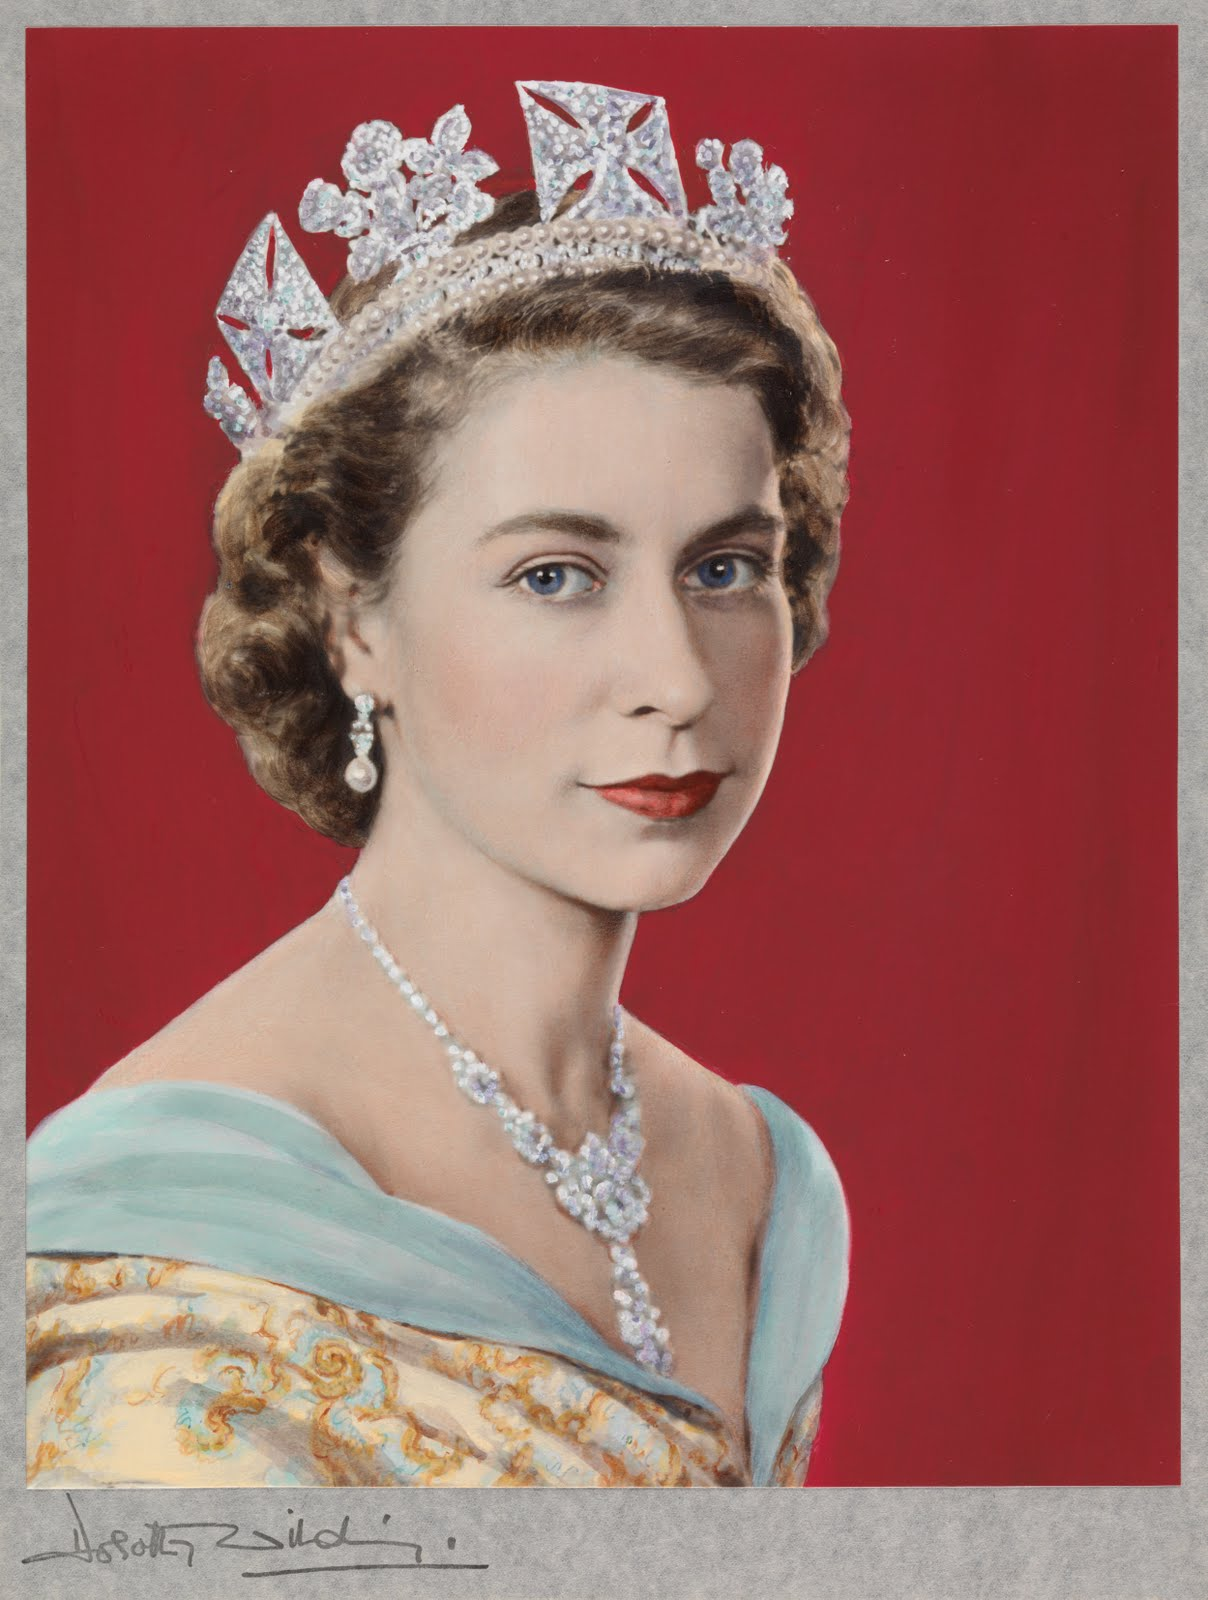 The Queen: Art and Image (фото 1)